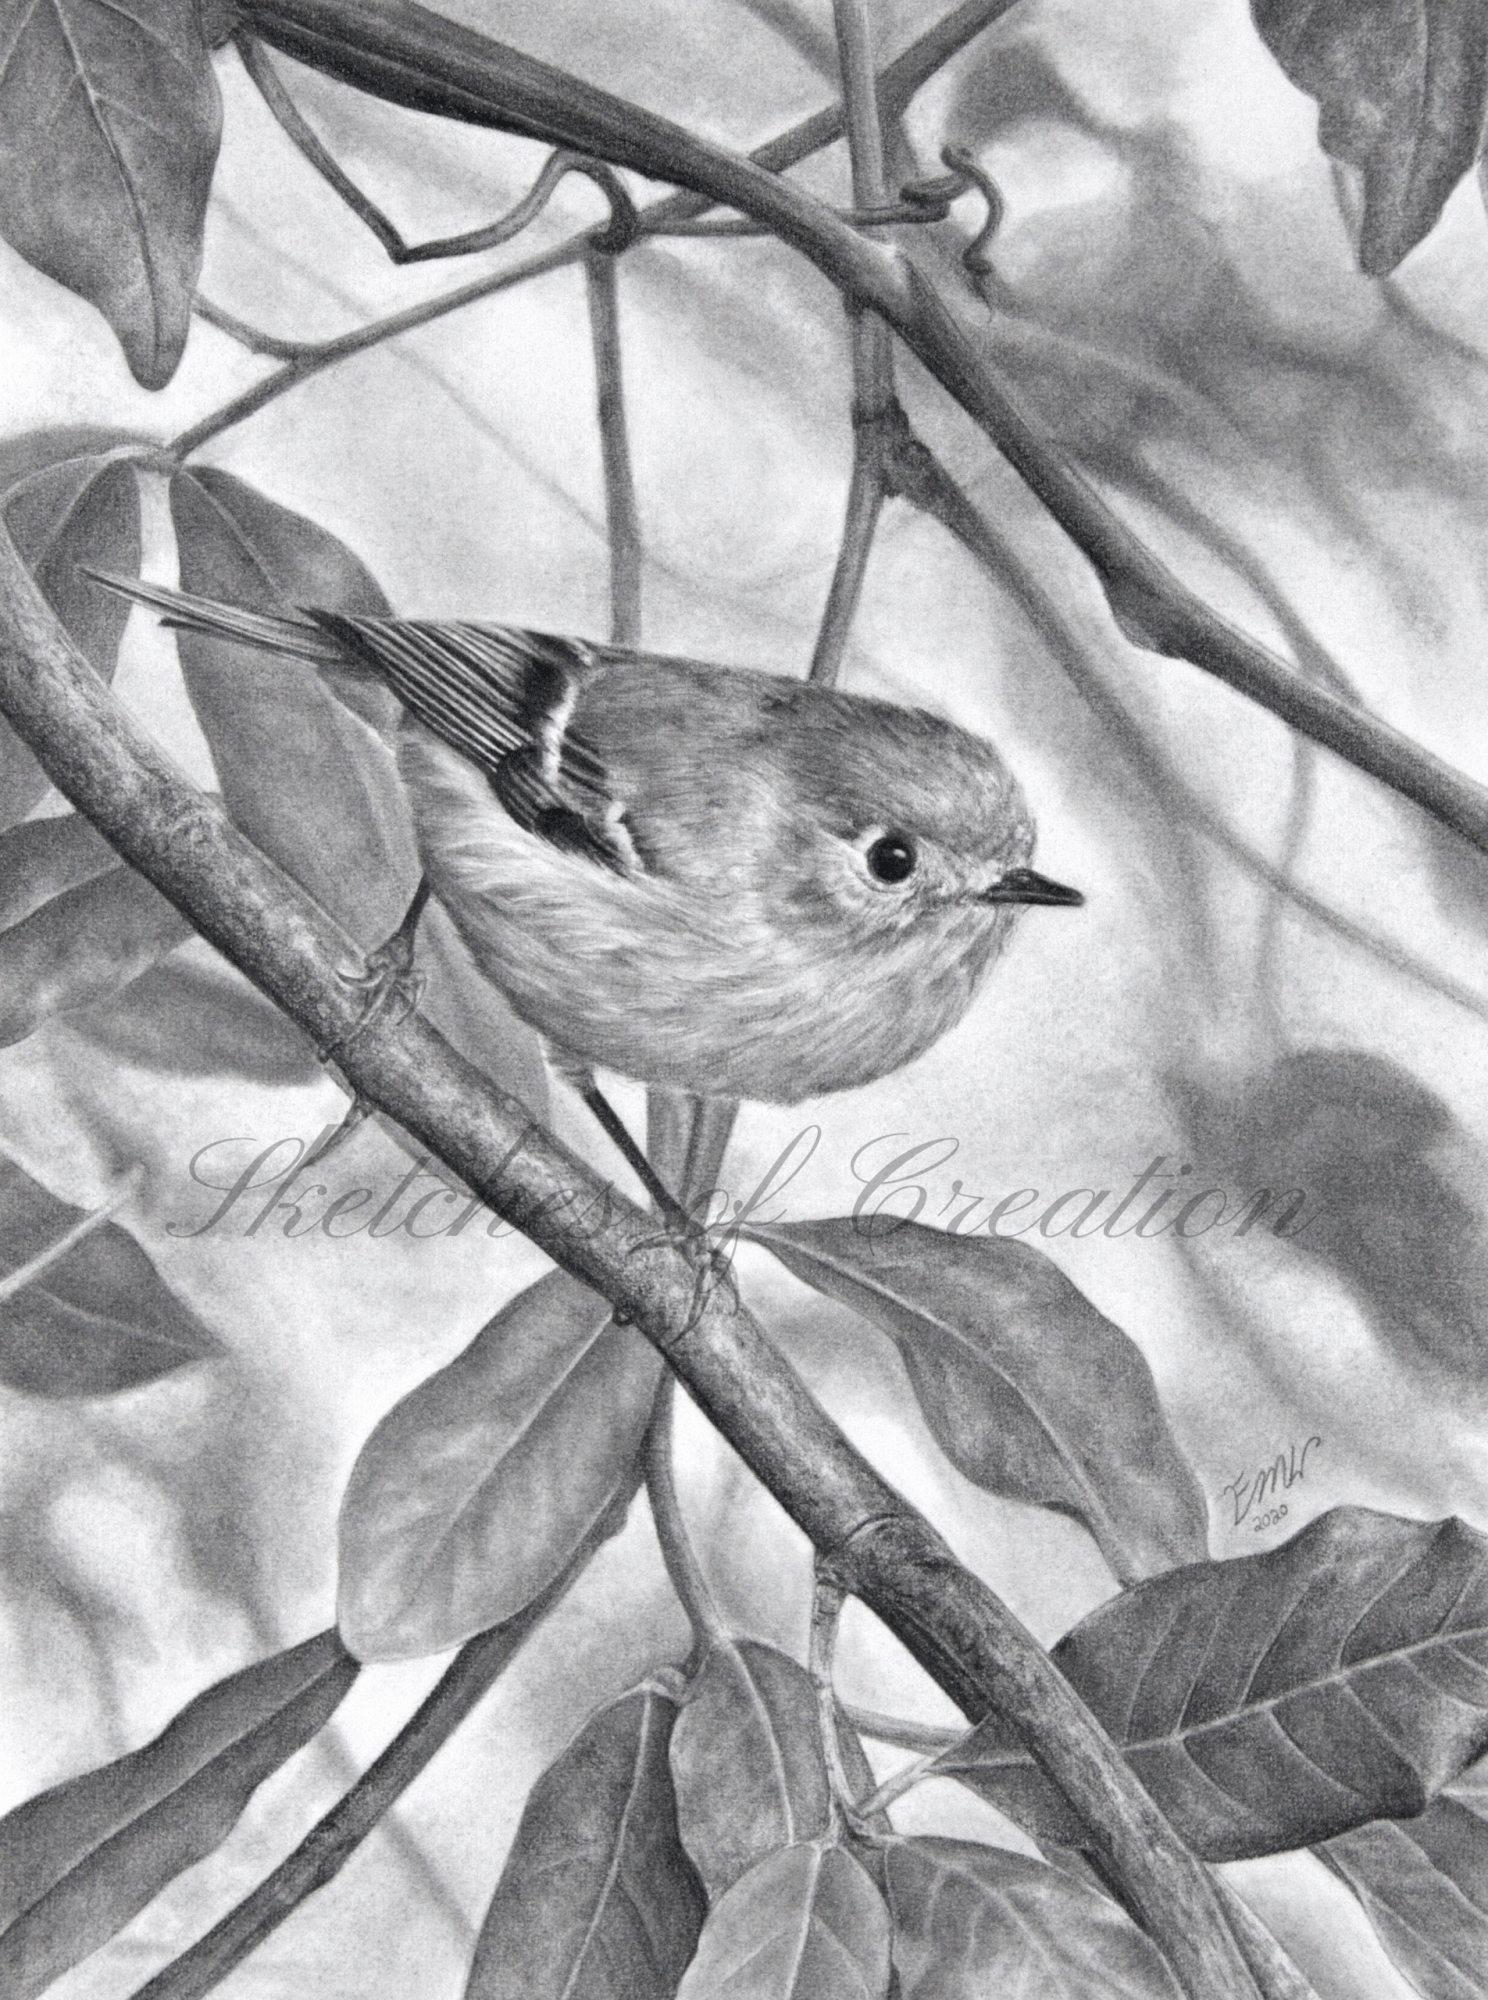 'Ruby-crowned Kinglet' a drawing of a Ruby-crowned Kinglet among leaves. 6x8 inches. Completed November 2020